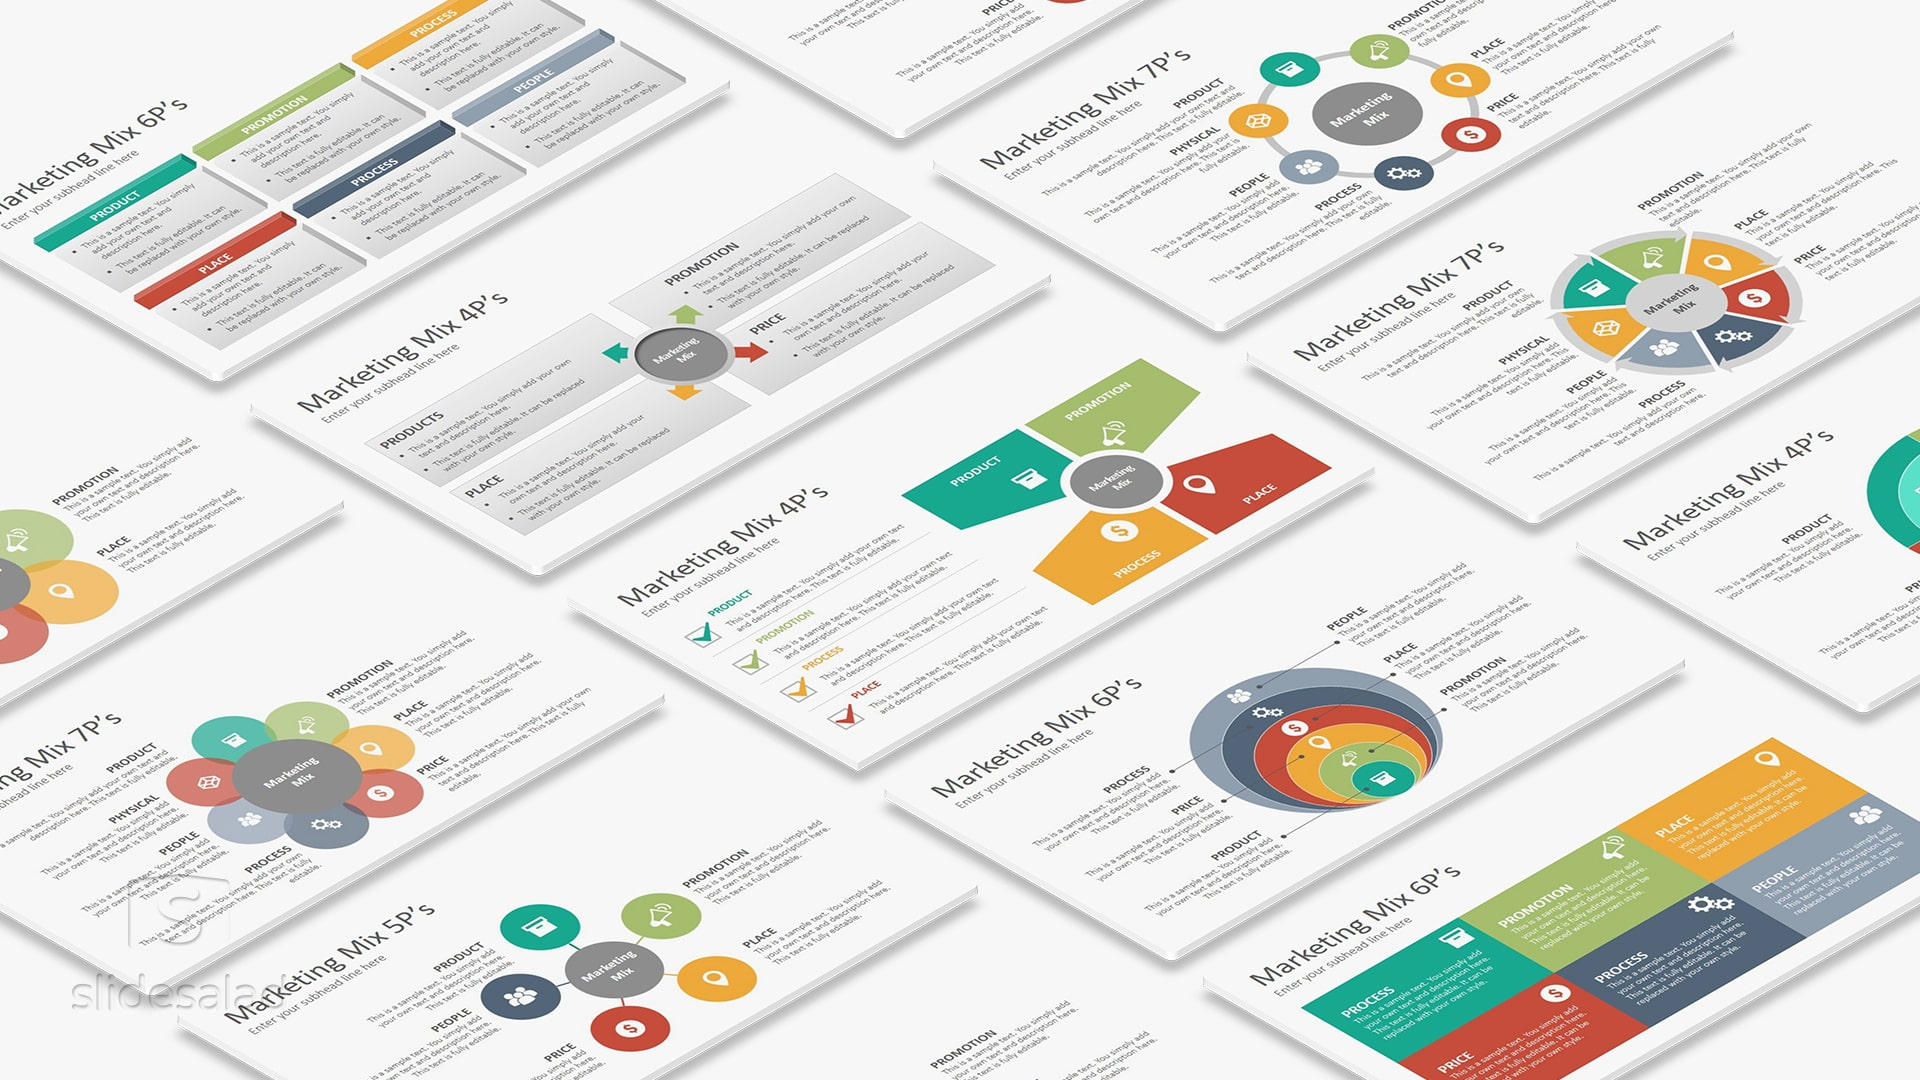 Marketing Mix Diagrams PowerPoint Presentation Template – PowerPoint Template Design for Professionals